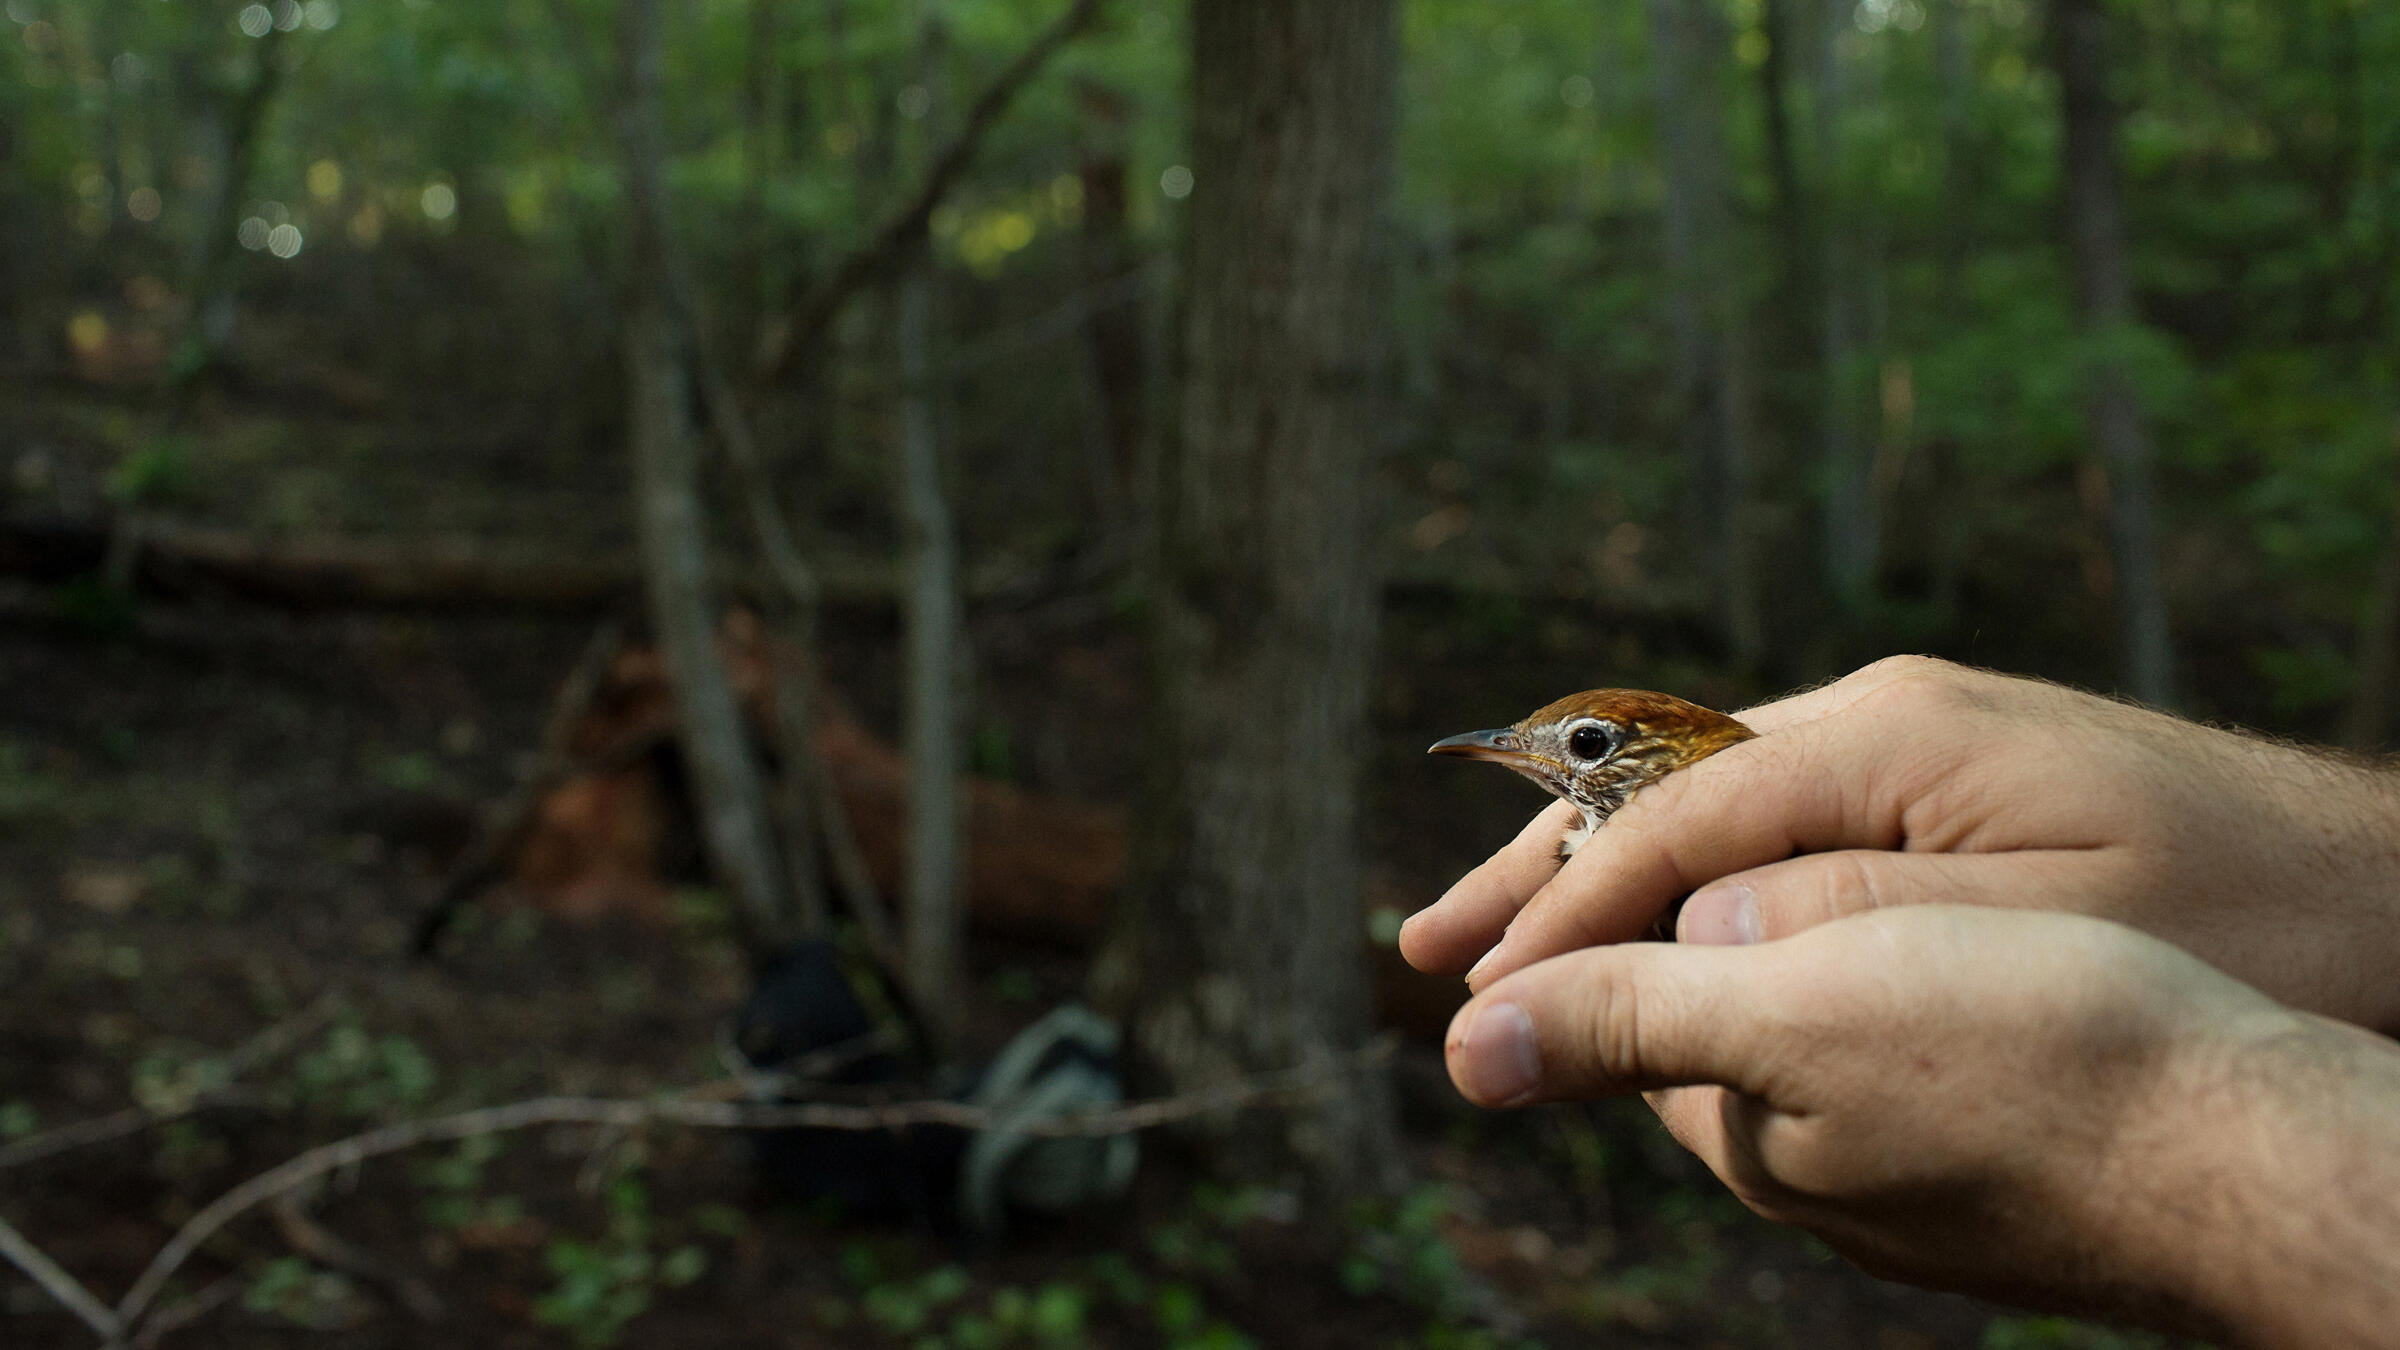 Tim Guida, a researcher from Smithsonian Migratory Bird Center, holds a Wood Thrush in his hands at Pilot Mountain in Pinnacle, N.C. Justin Cook